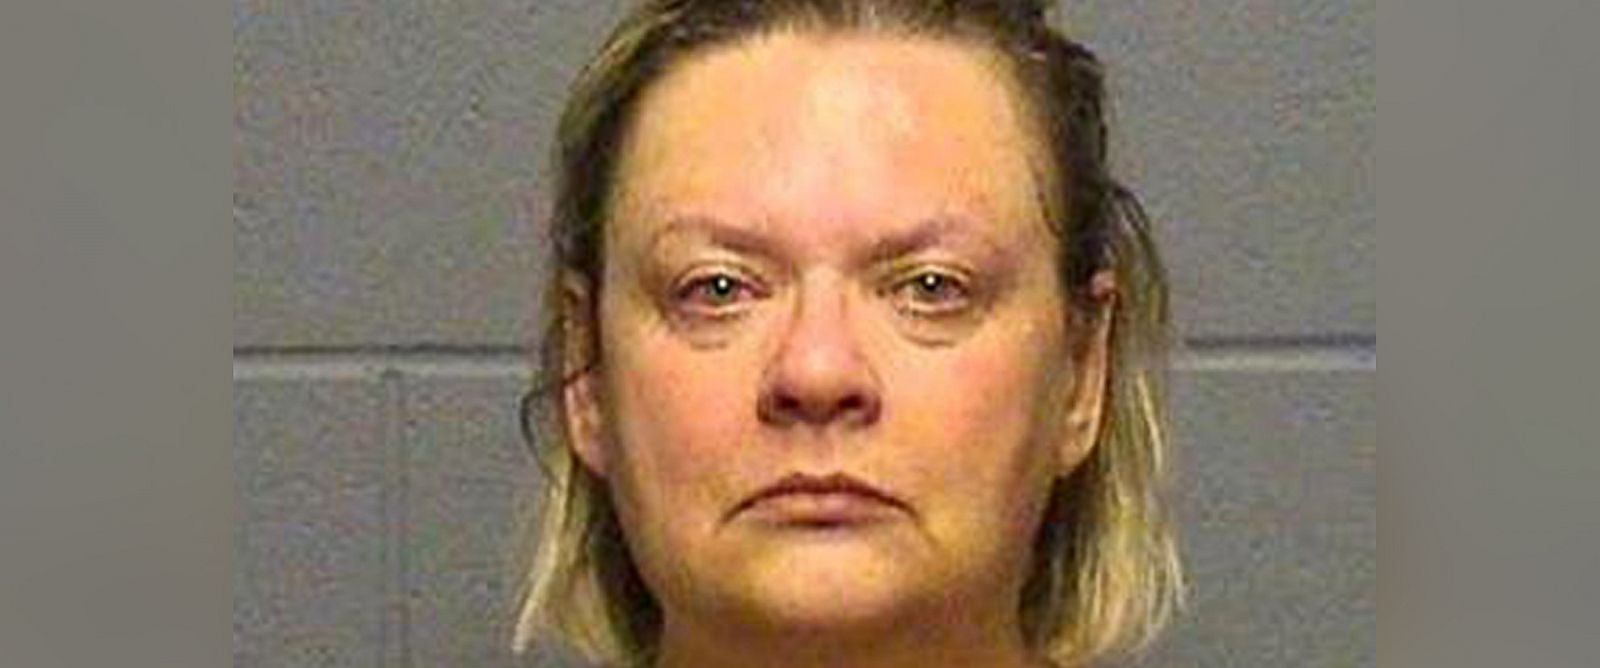 PHOTO: Barbara Davis, 61, of Arlington, Mass., was arrested Tuesday for attacking a neighbor during blizzard with a snowblower, police said.